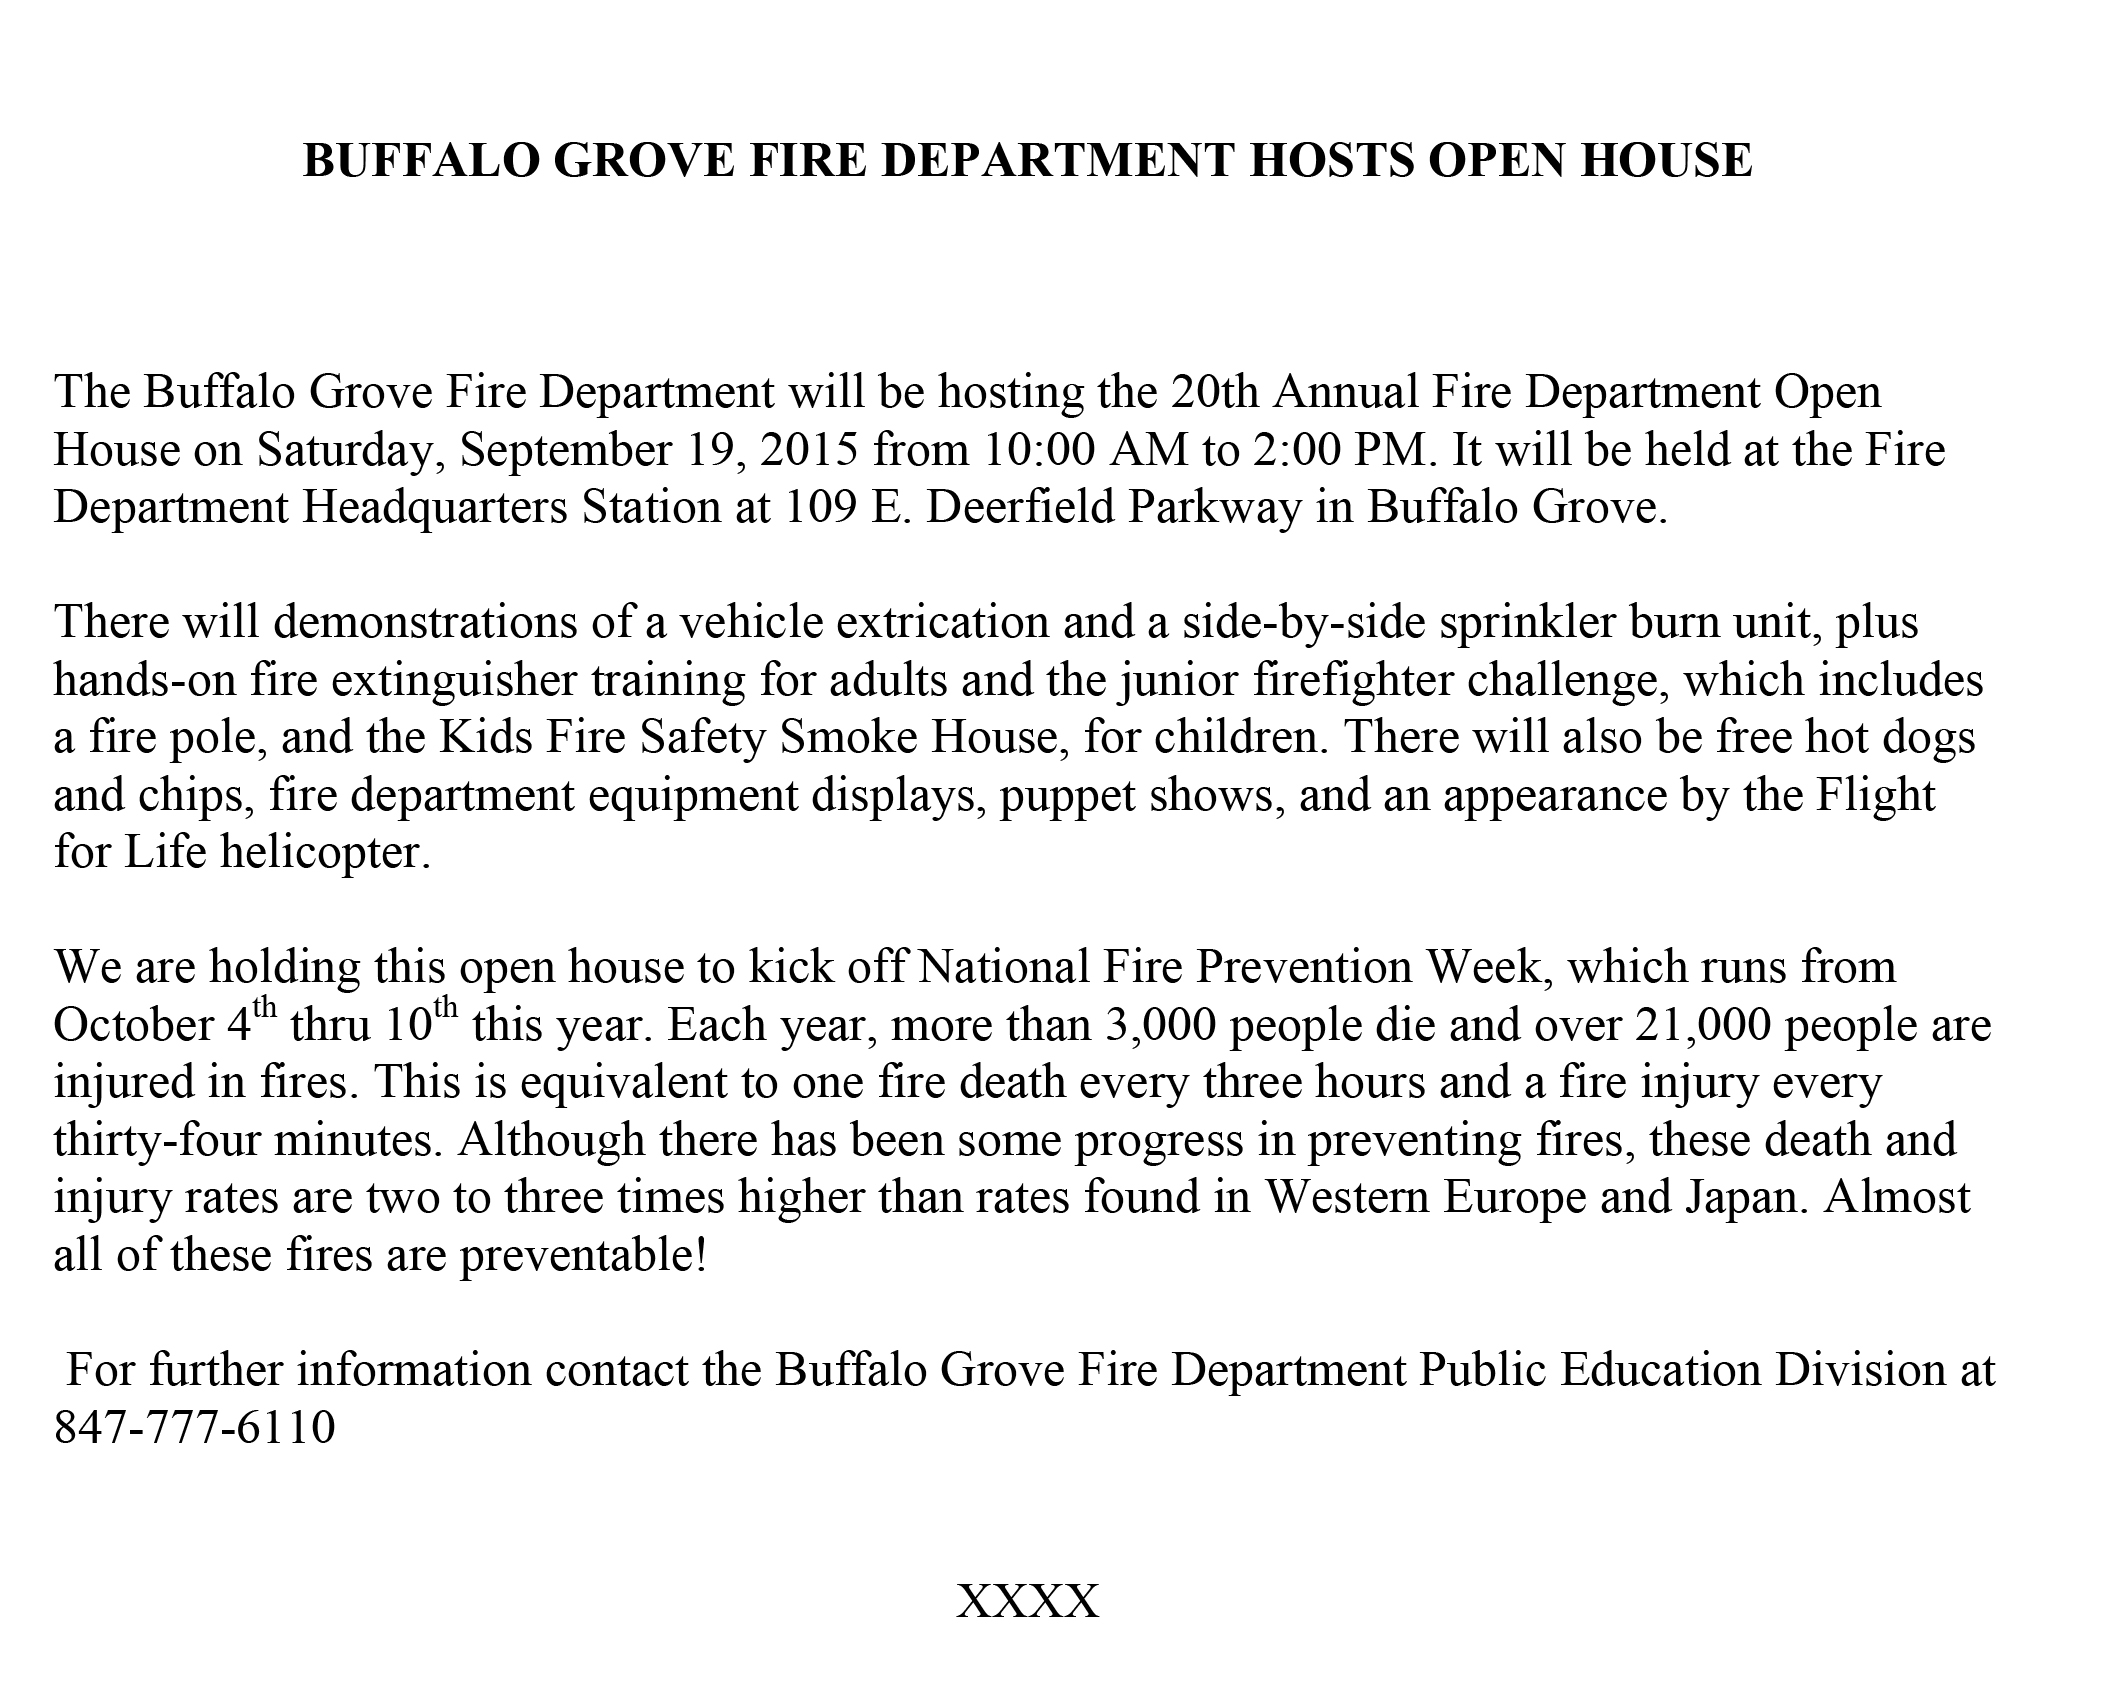 Microsoft Word - Buffalo Grove open house 2015 press release.doc